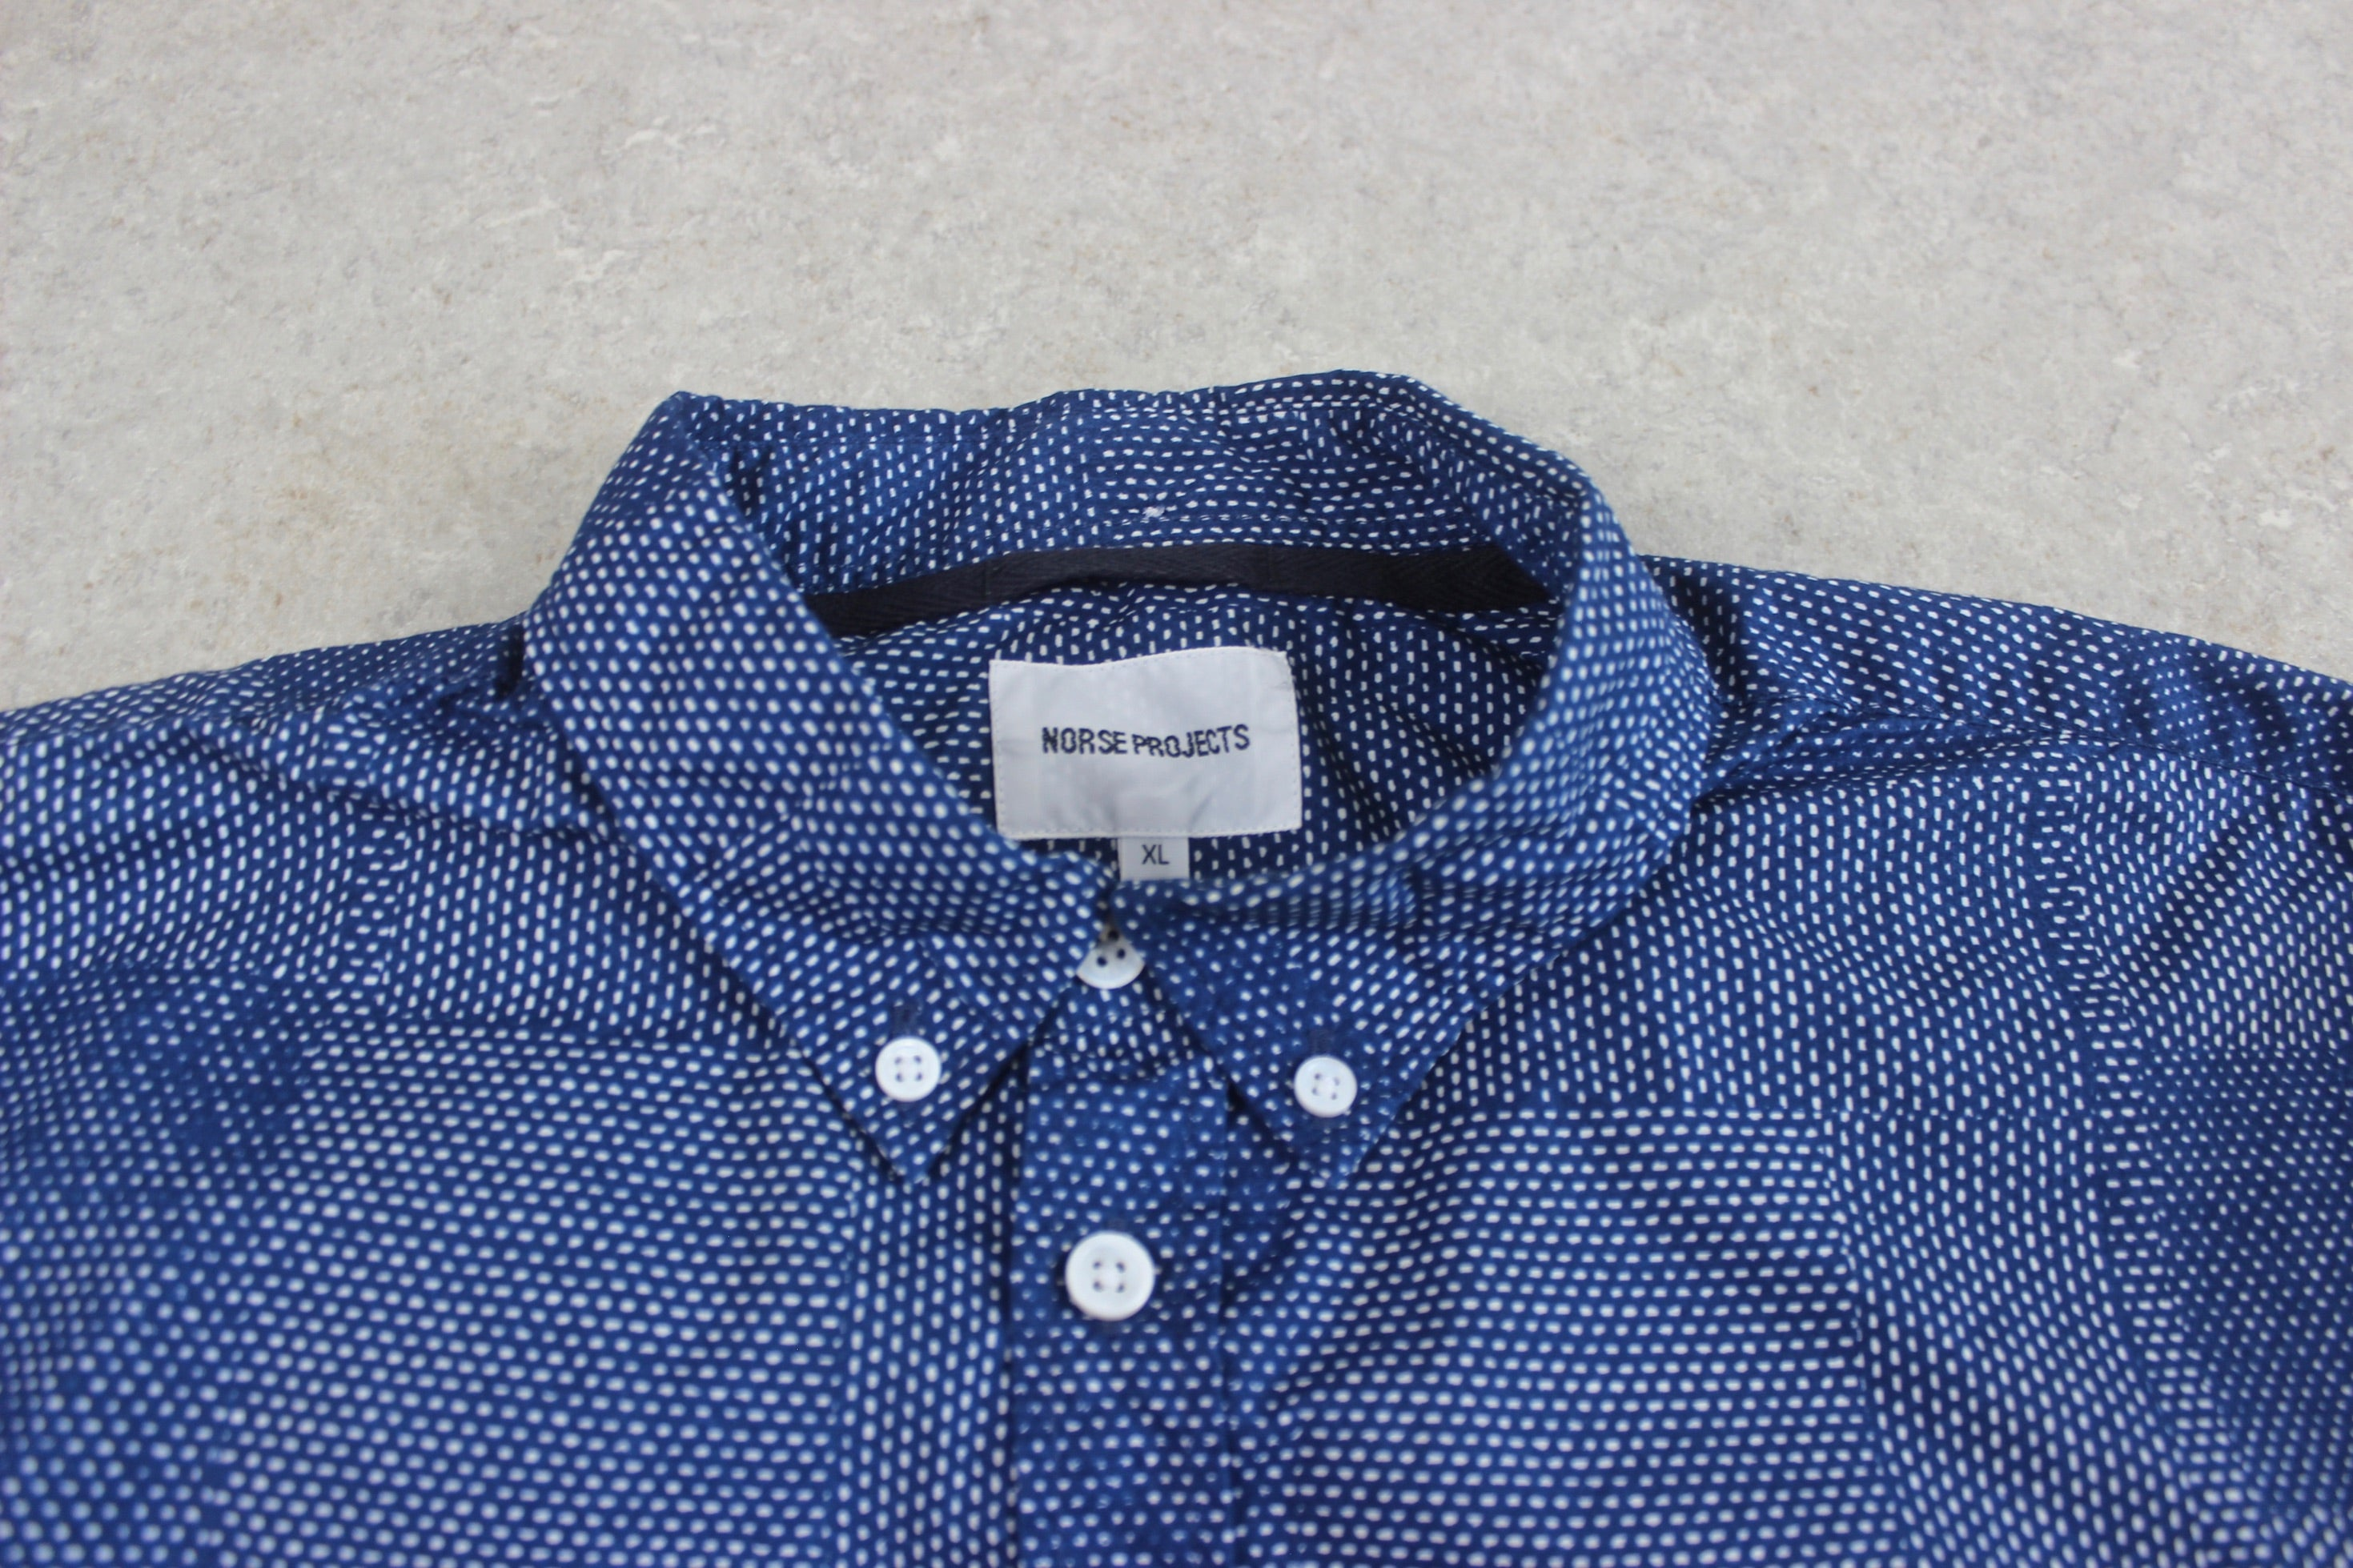 Norse Projects - Shirt - Blue Dot Pattern - Extra Large